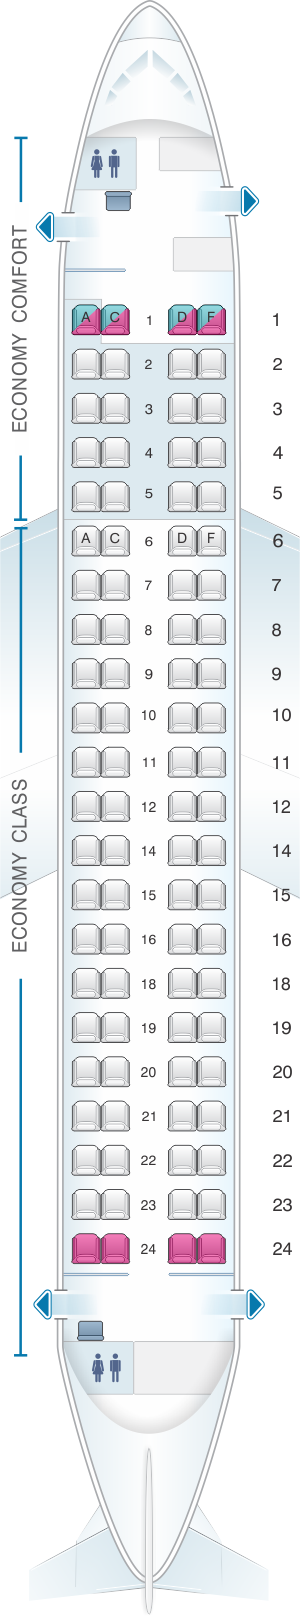 Seat map for Alitalia Airlines - Air One Embraer 175